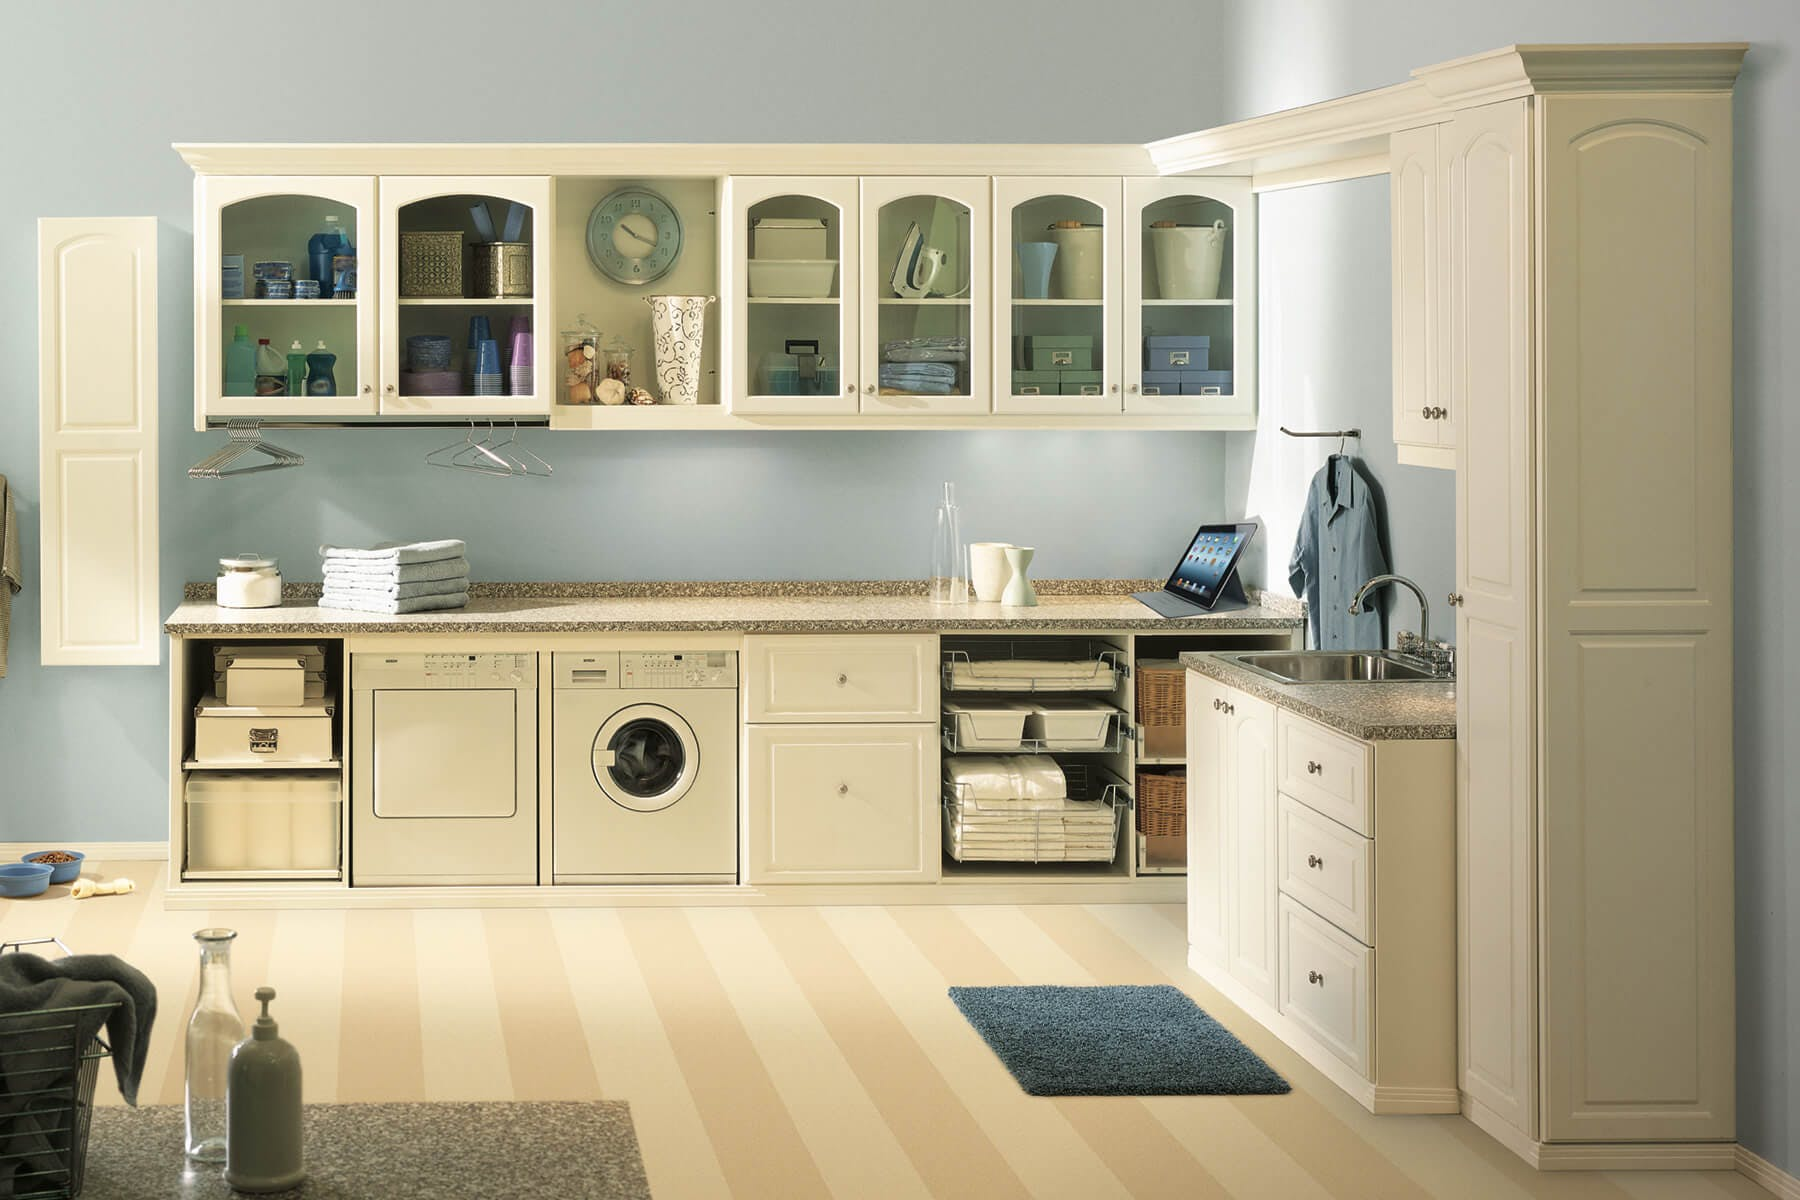 laundry org cabinet cabinets cabinetry image l storage permalink room for omega